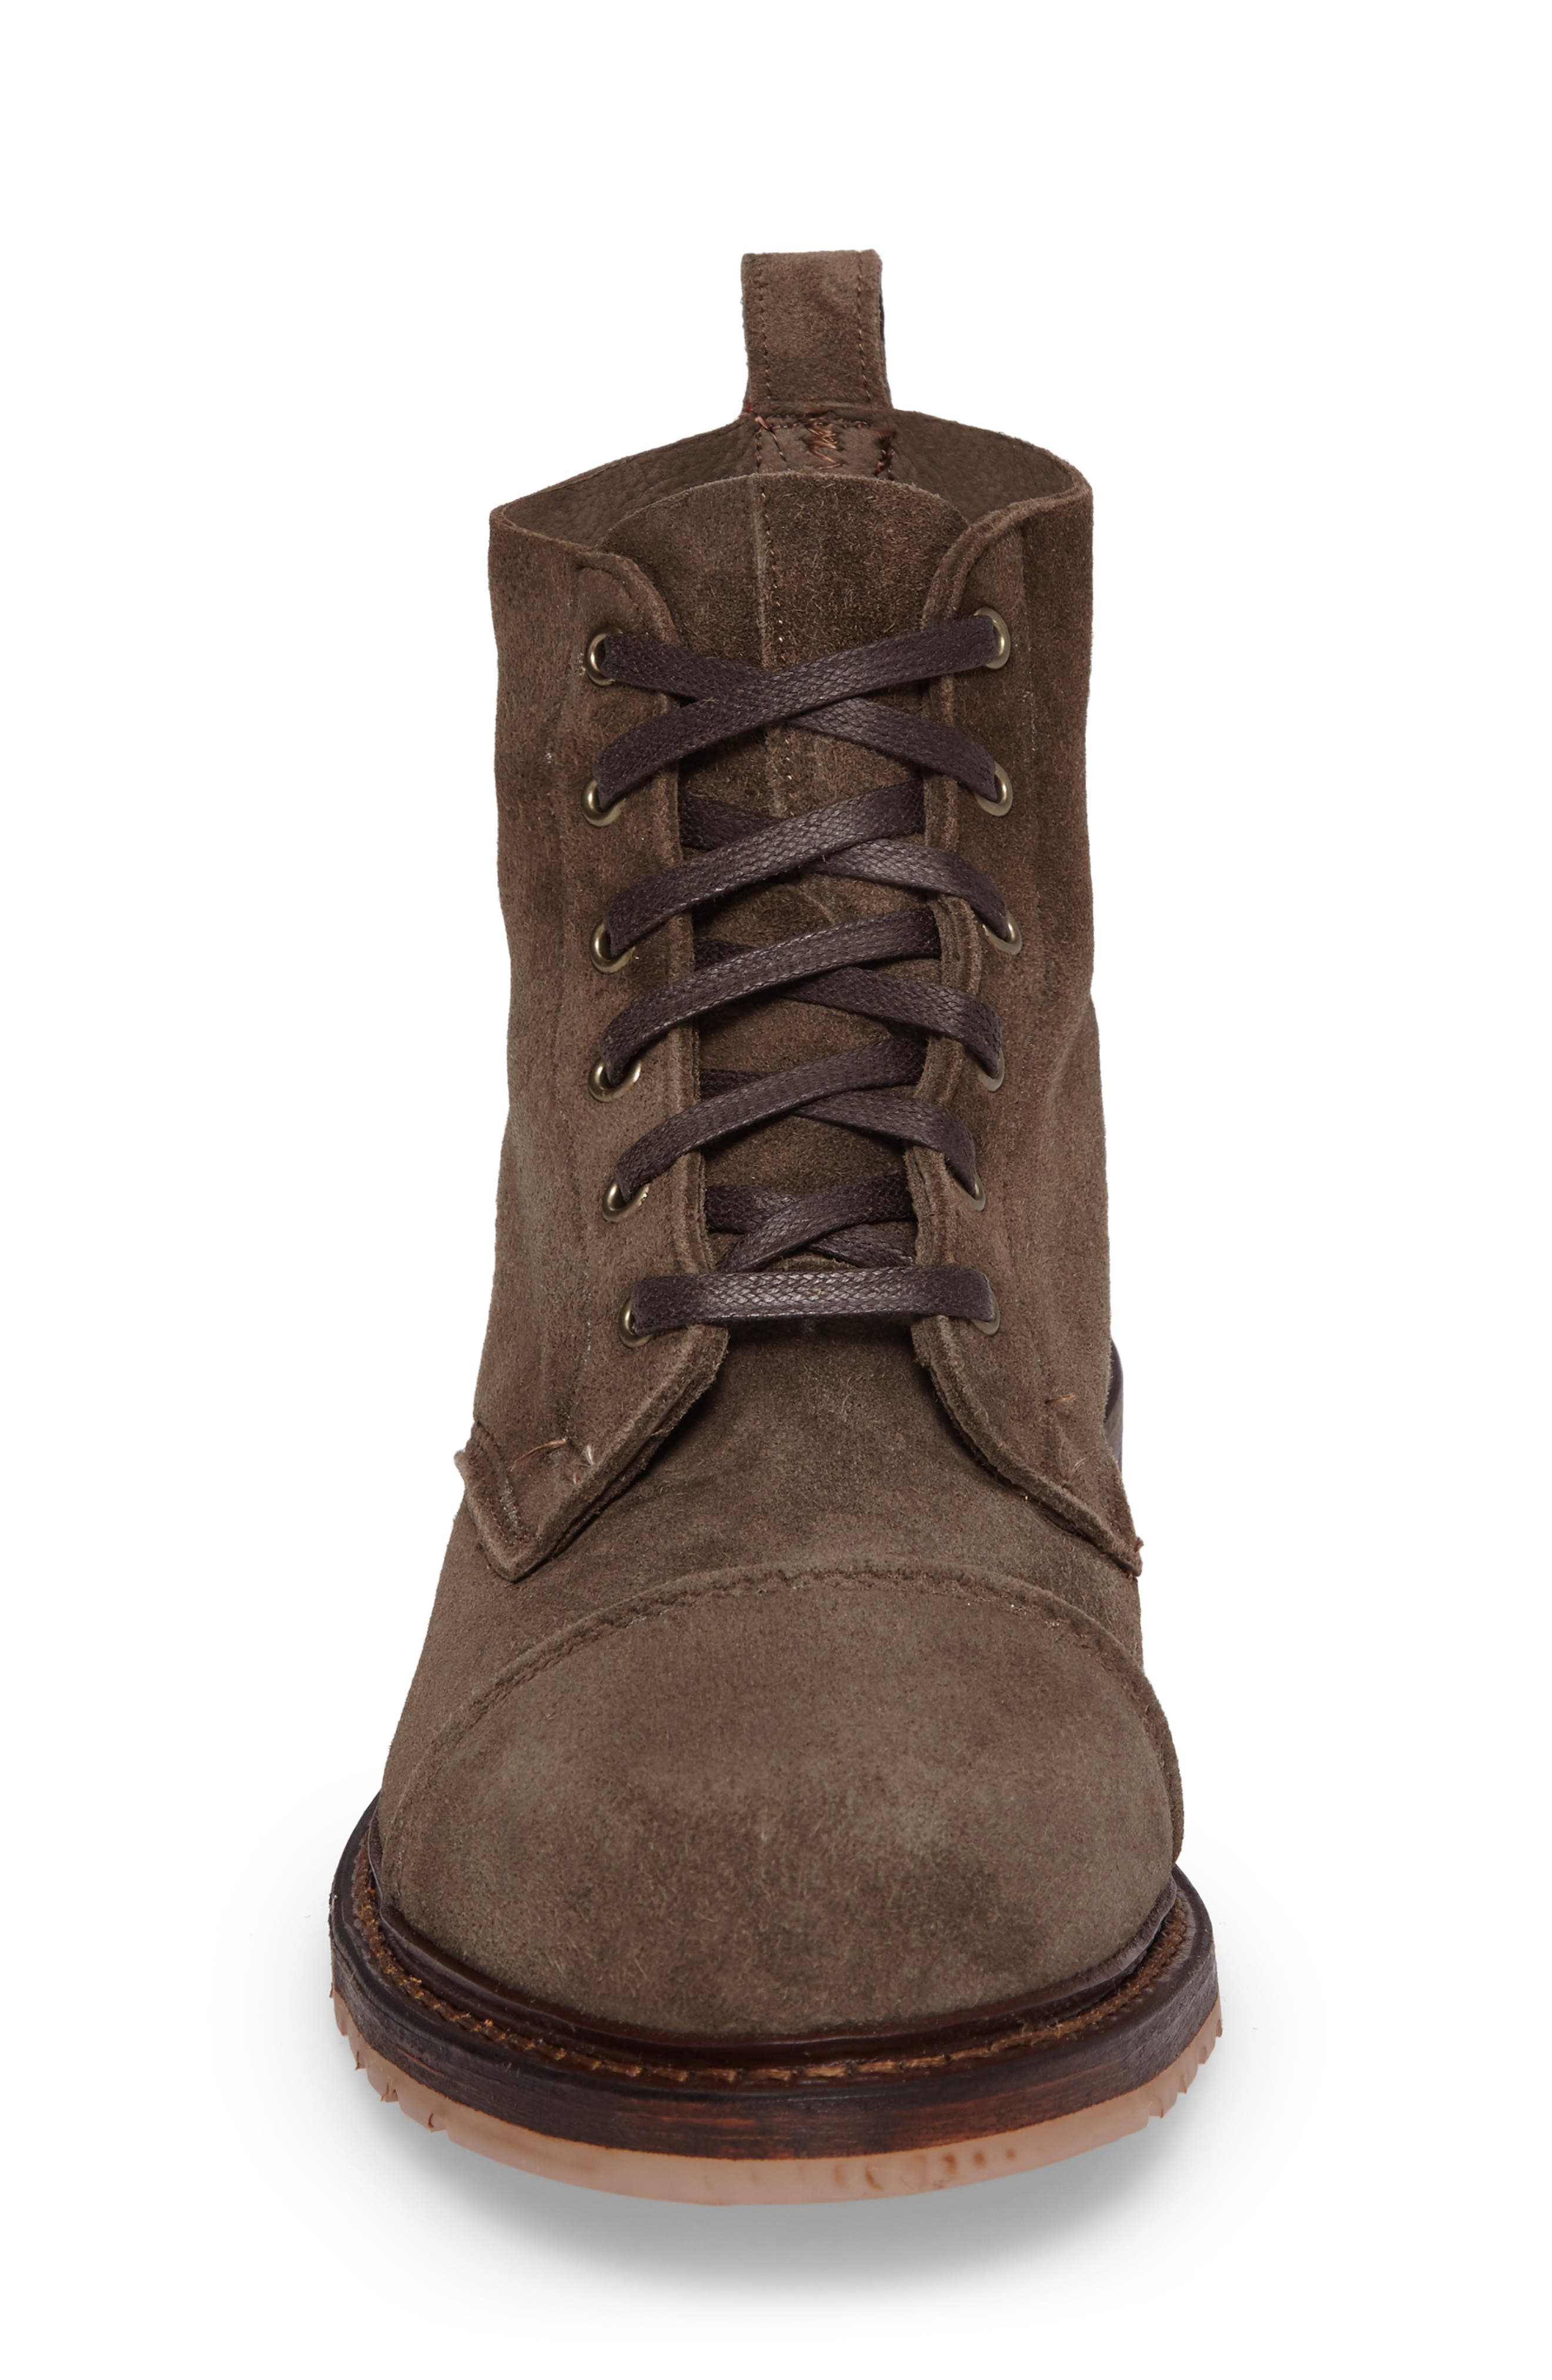 Caen Cap Toe Boot,                             Alternate thumbnail 4, color,                             Taupe Leather